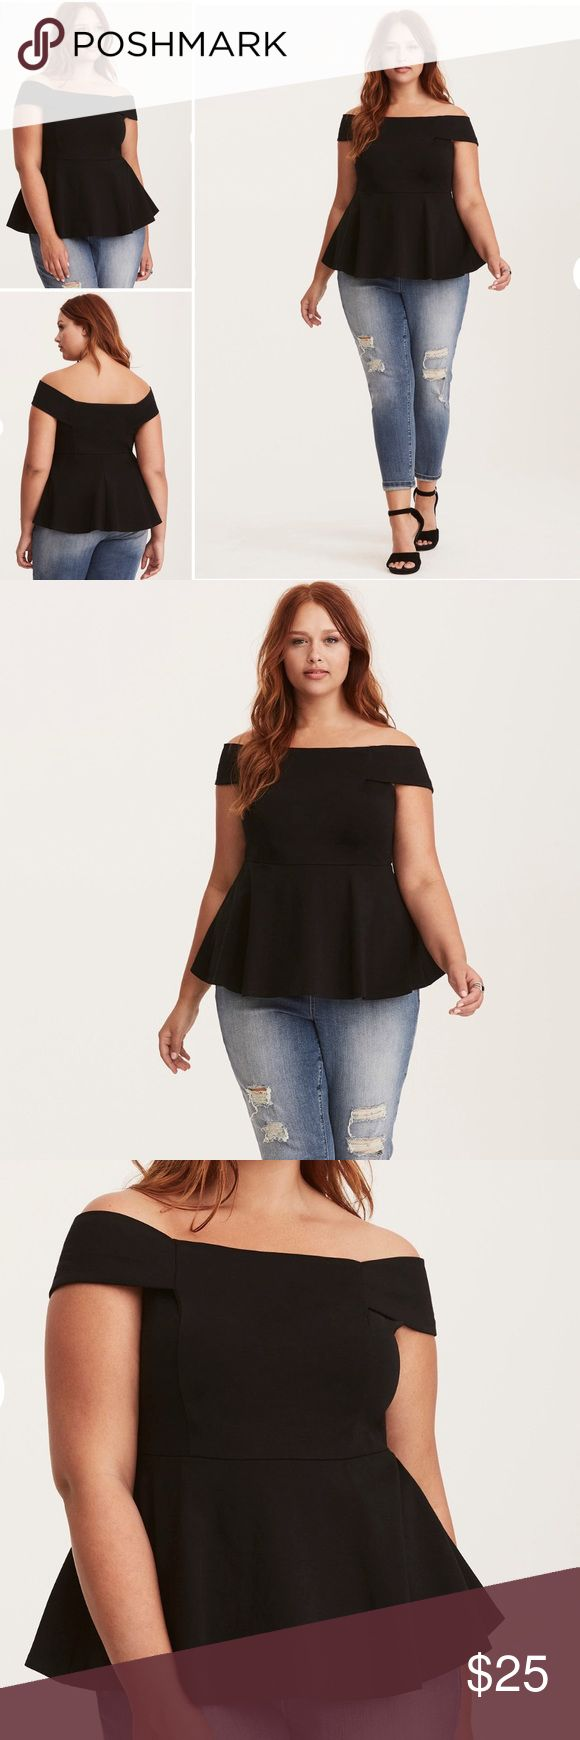 ONLY 1 LEFT!! I Off Shoulder Peplum Top 🖤 PRICE IS FIRM UNLESS BUNDLED.   Black is the new black and this top is the new everything. Sophisticated enough for any nightly event, the LBT (little black top) is curve-hugging knit with a little bit of stretch. A peplum flare is a tummy concealer, while the off shoulder sleeves flash some skin. torrid Tops Blouses